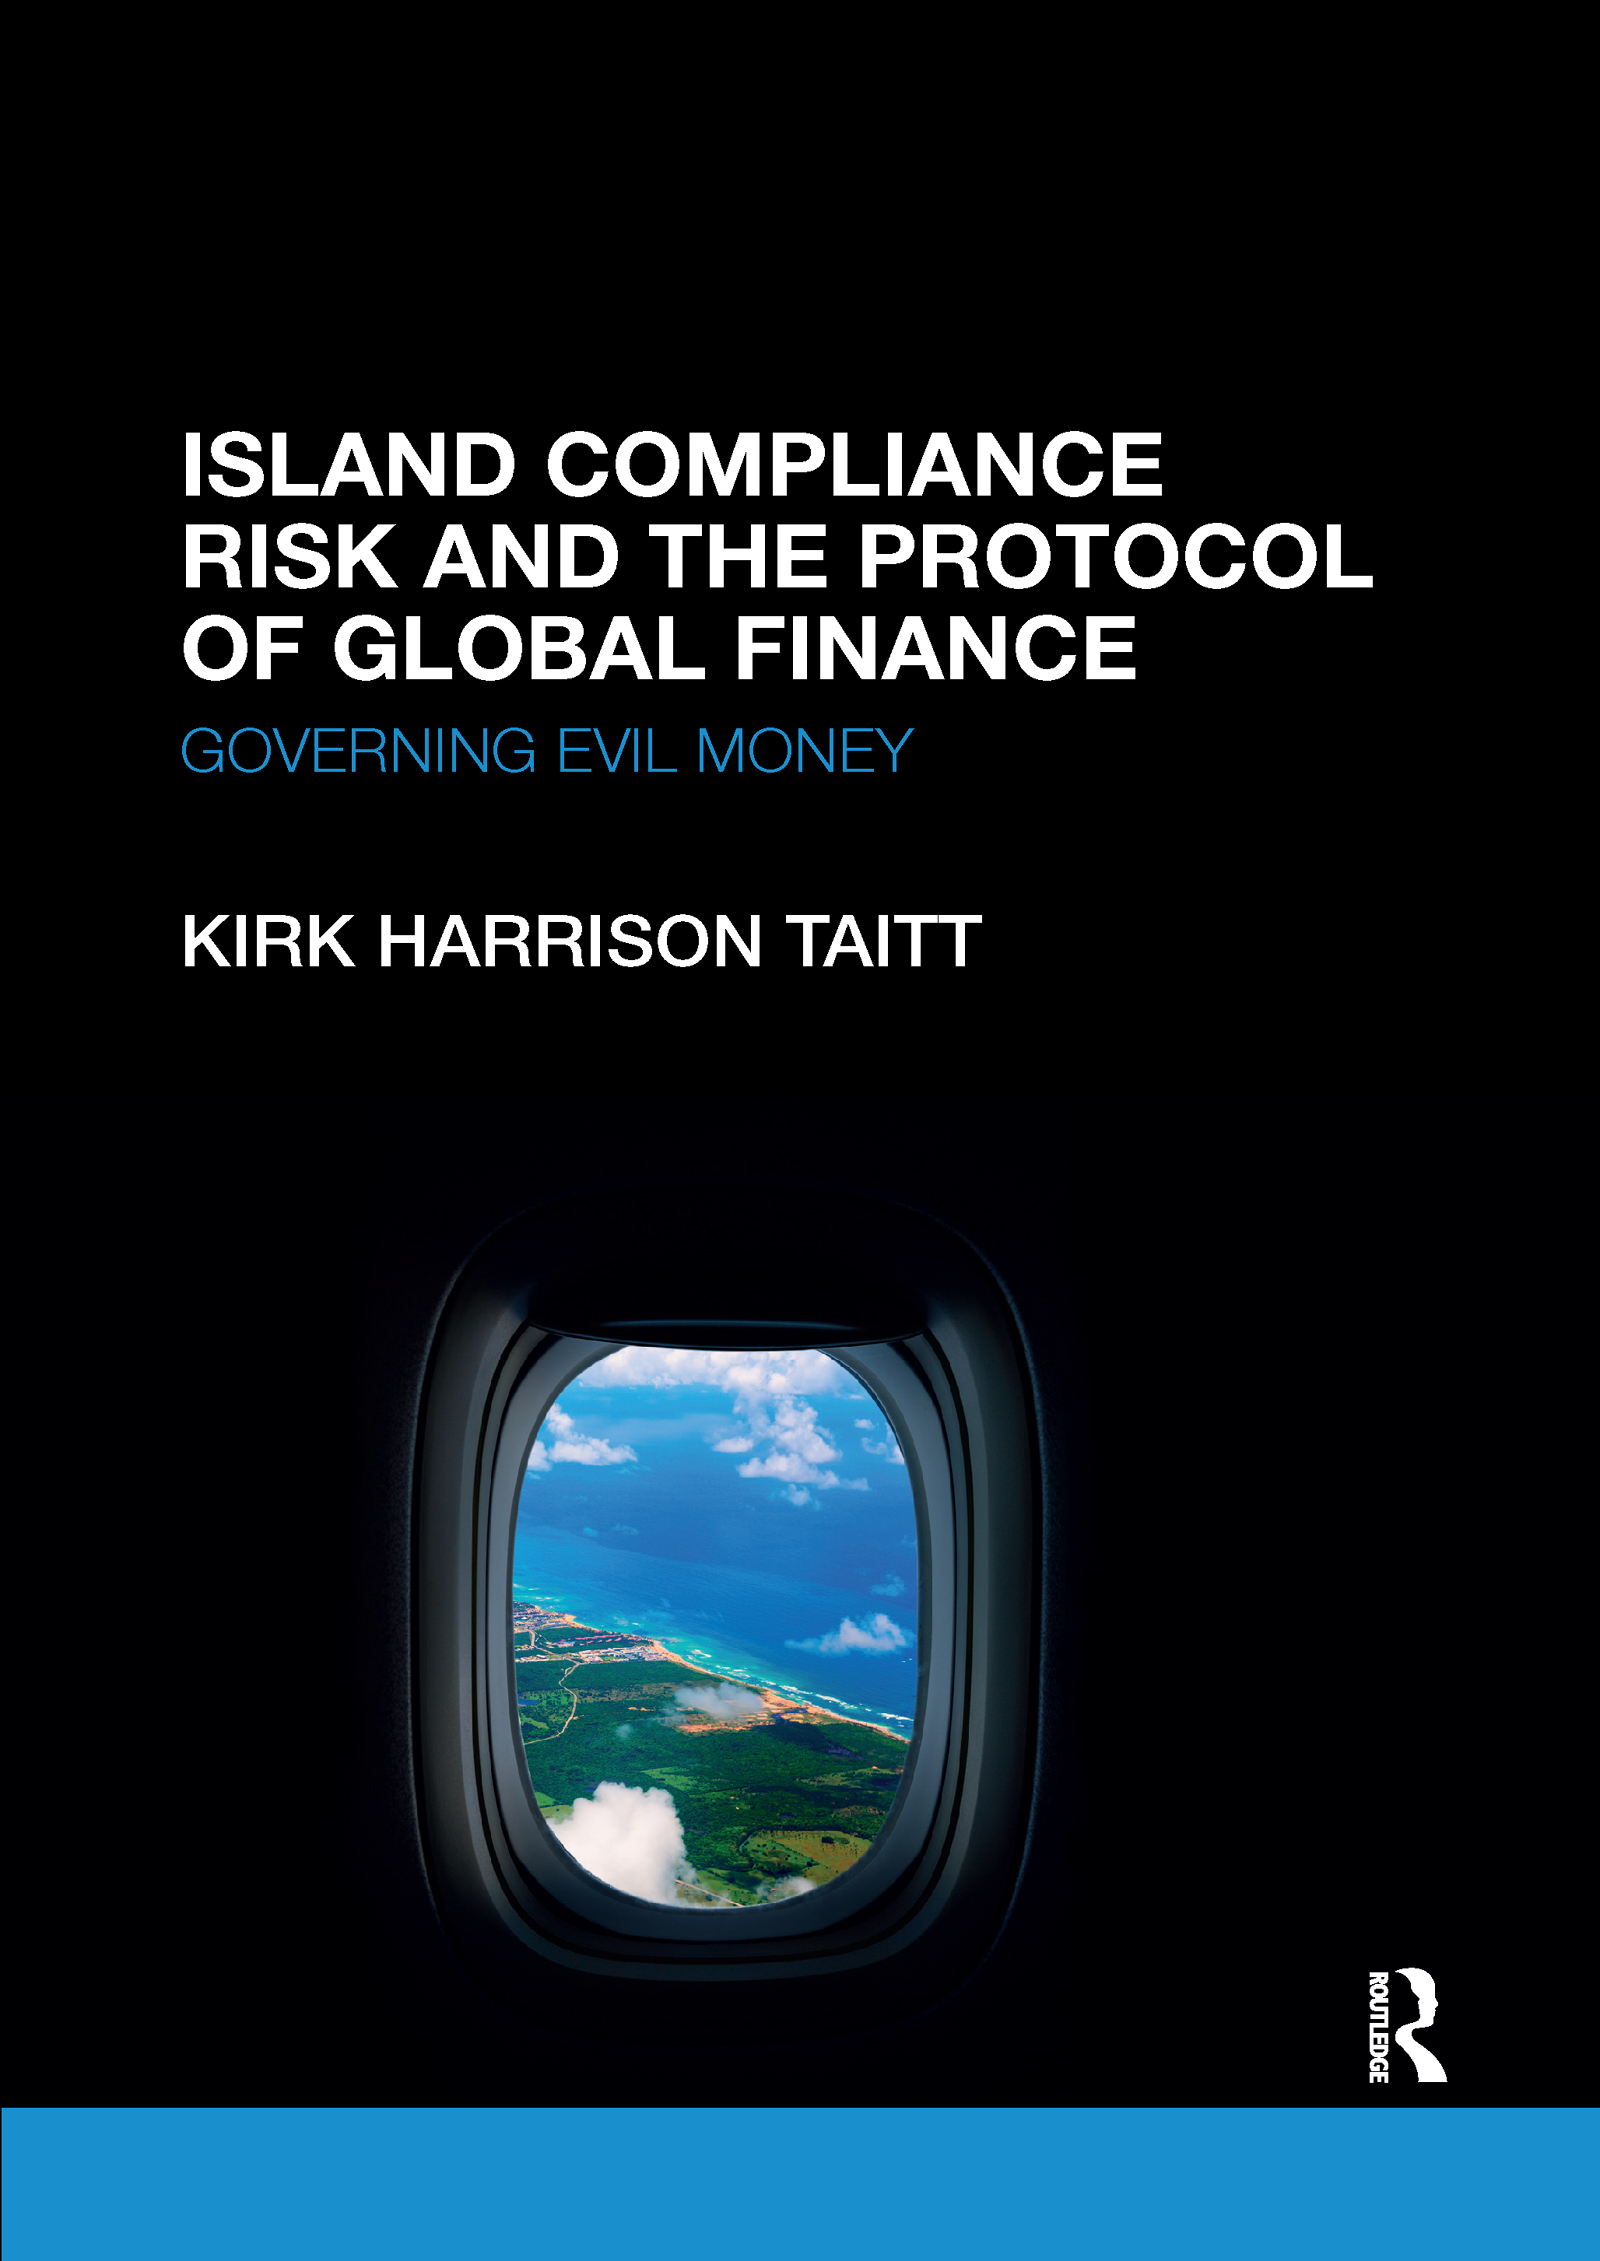 Island Compliance Risk and the Protocol of Global Finance